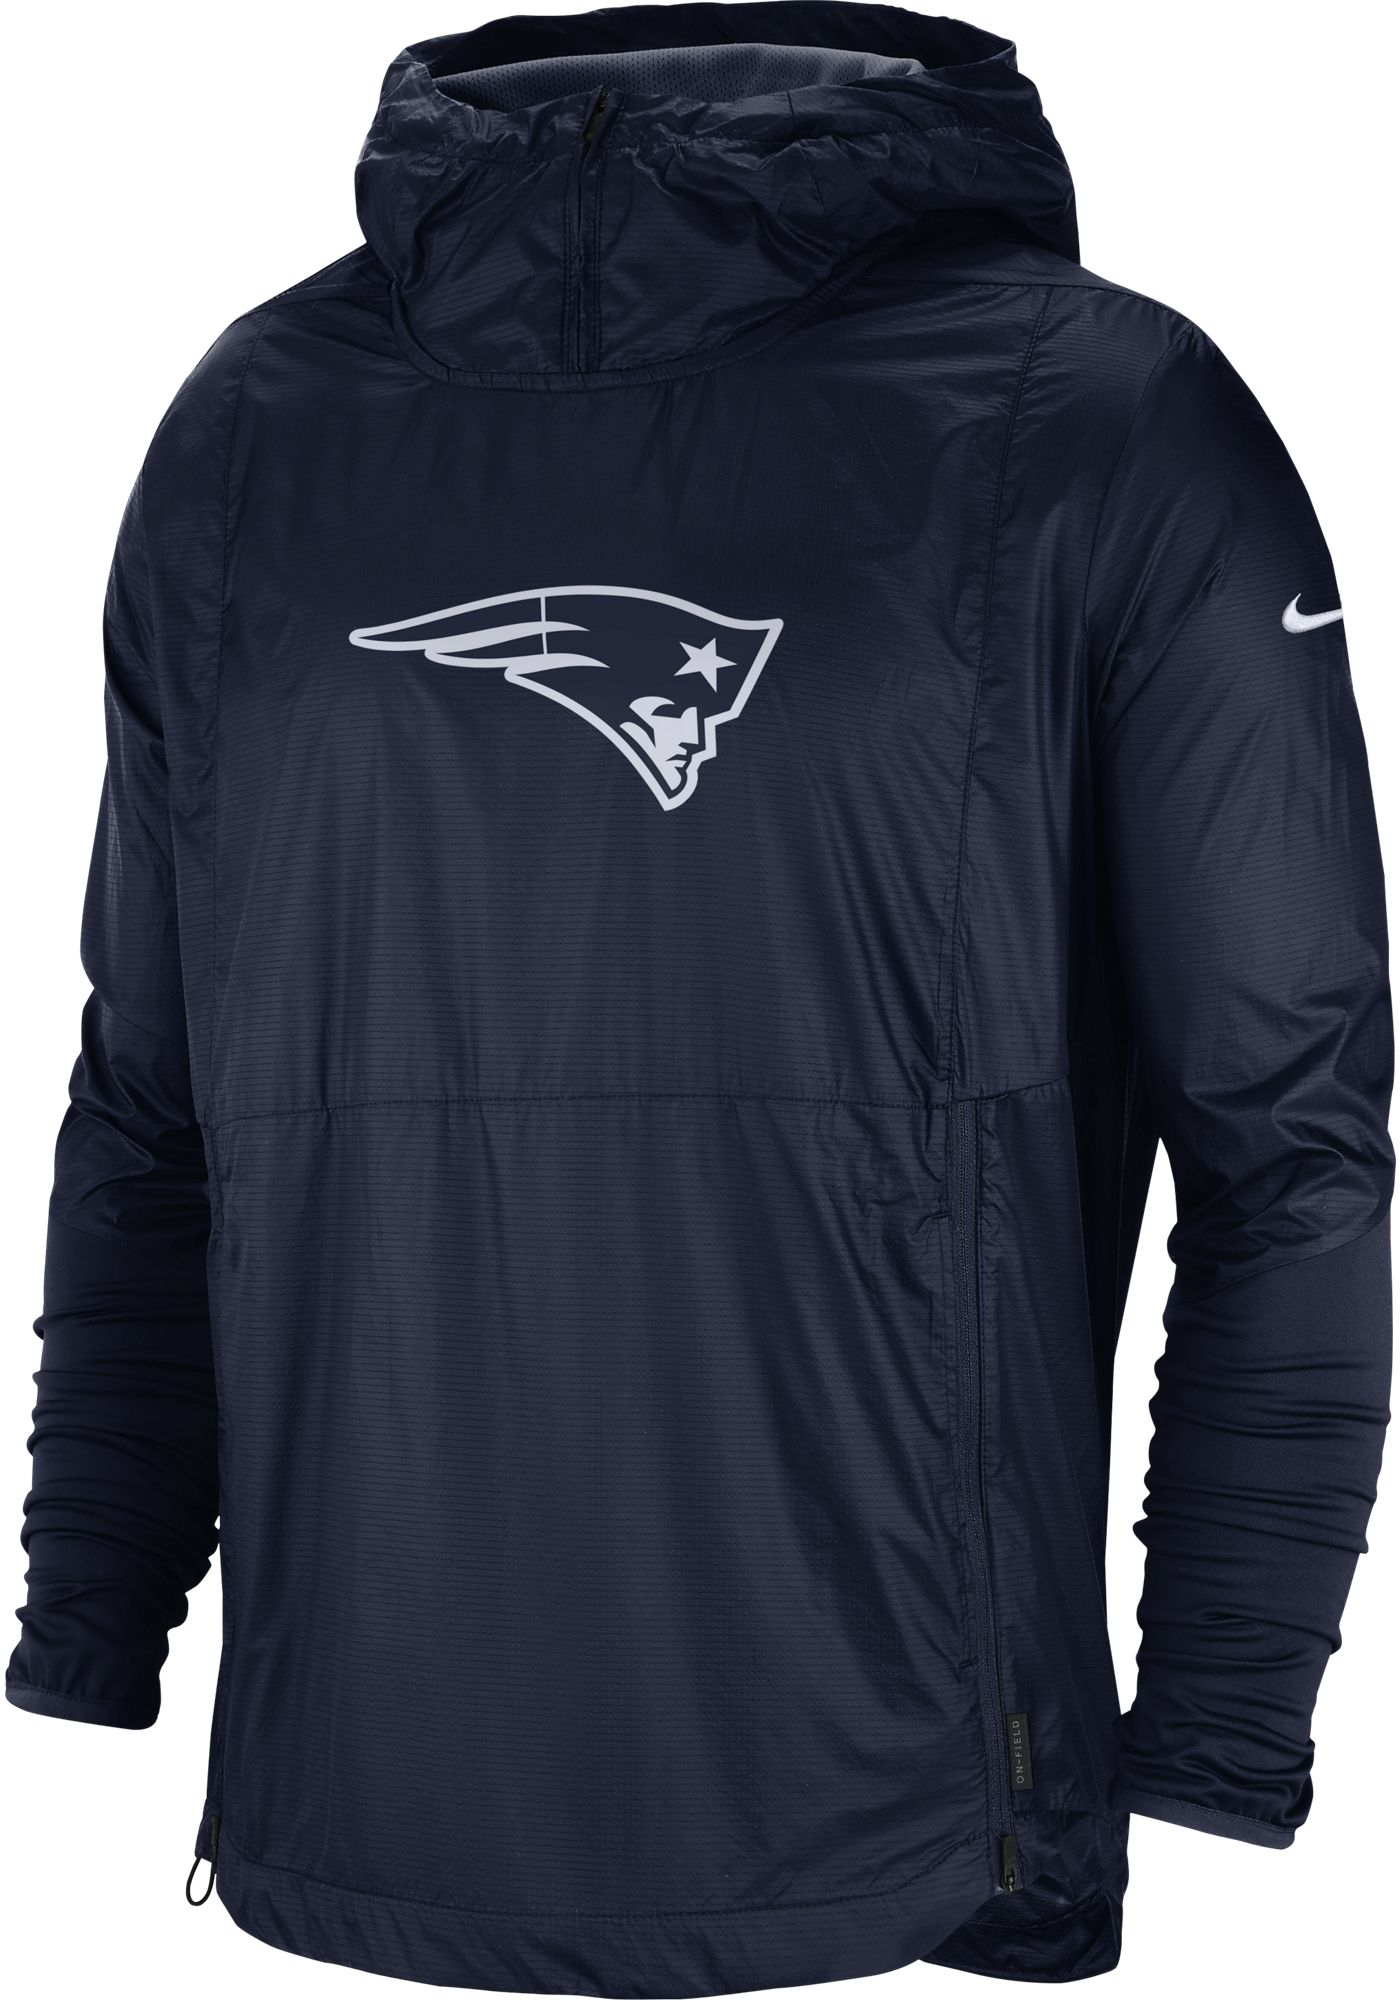 Nike Men's New England Patriots Sideline Repel Player Navy Jacket